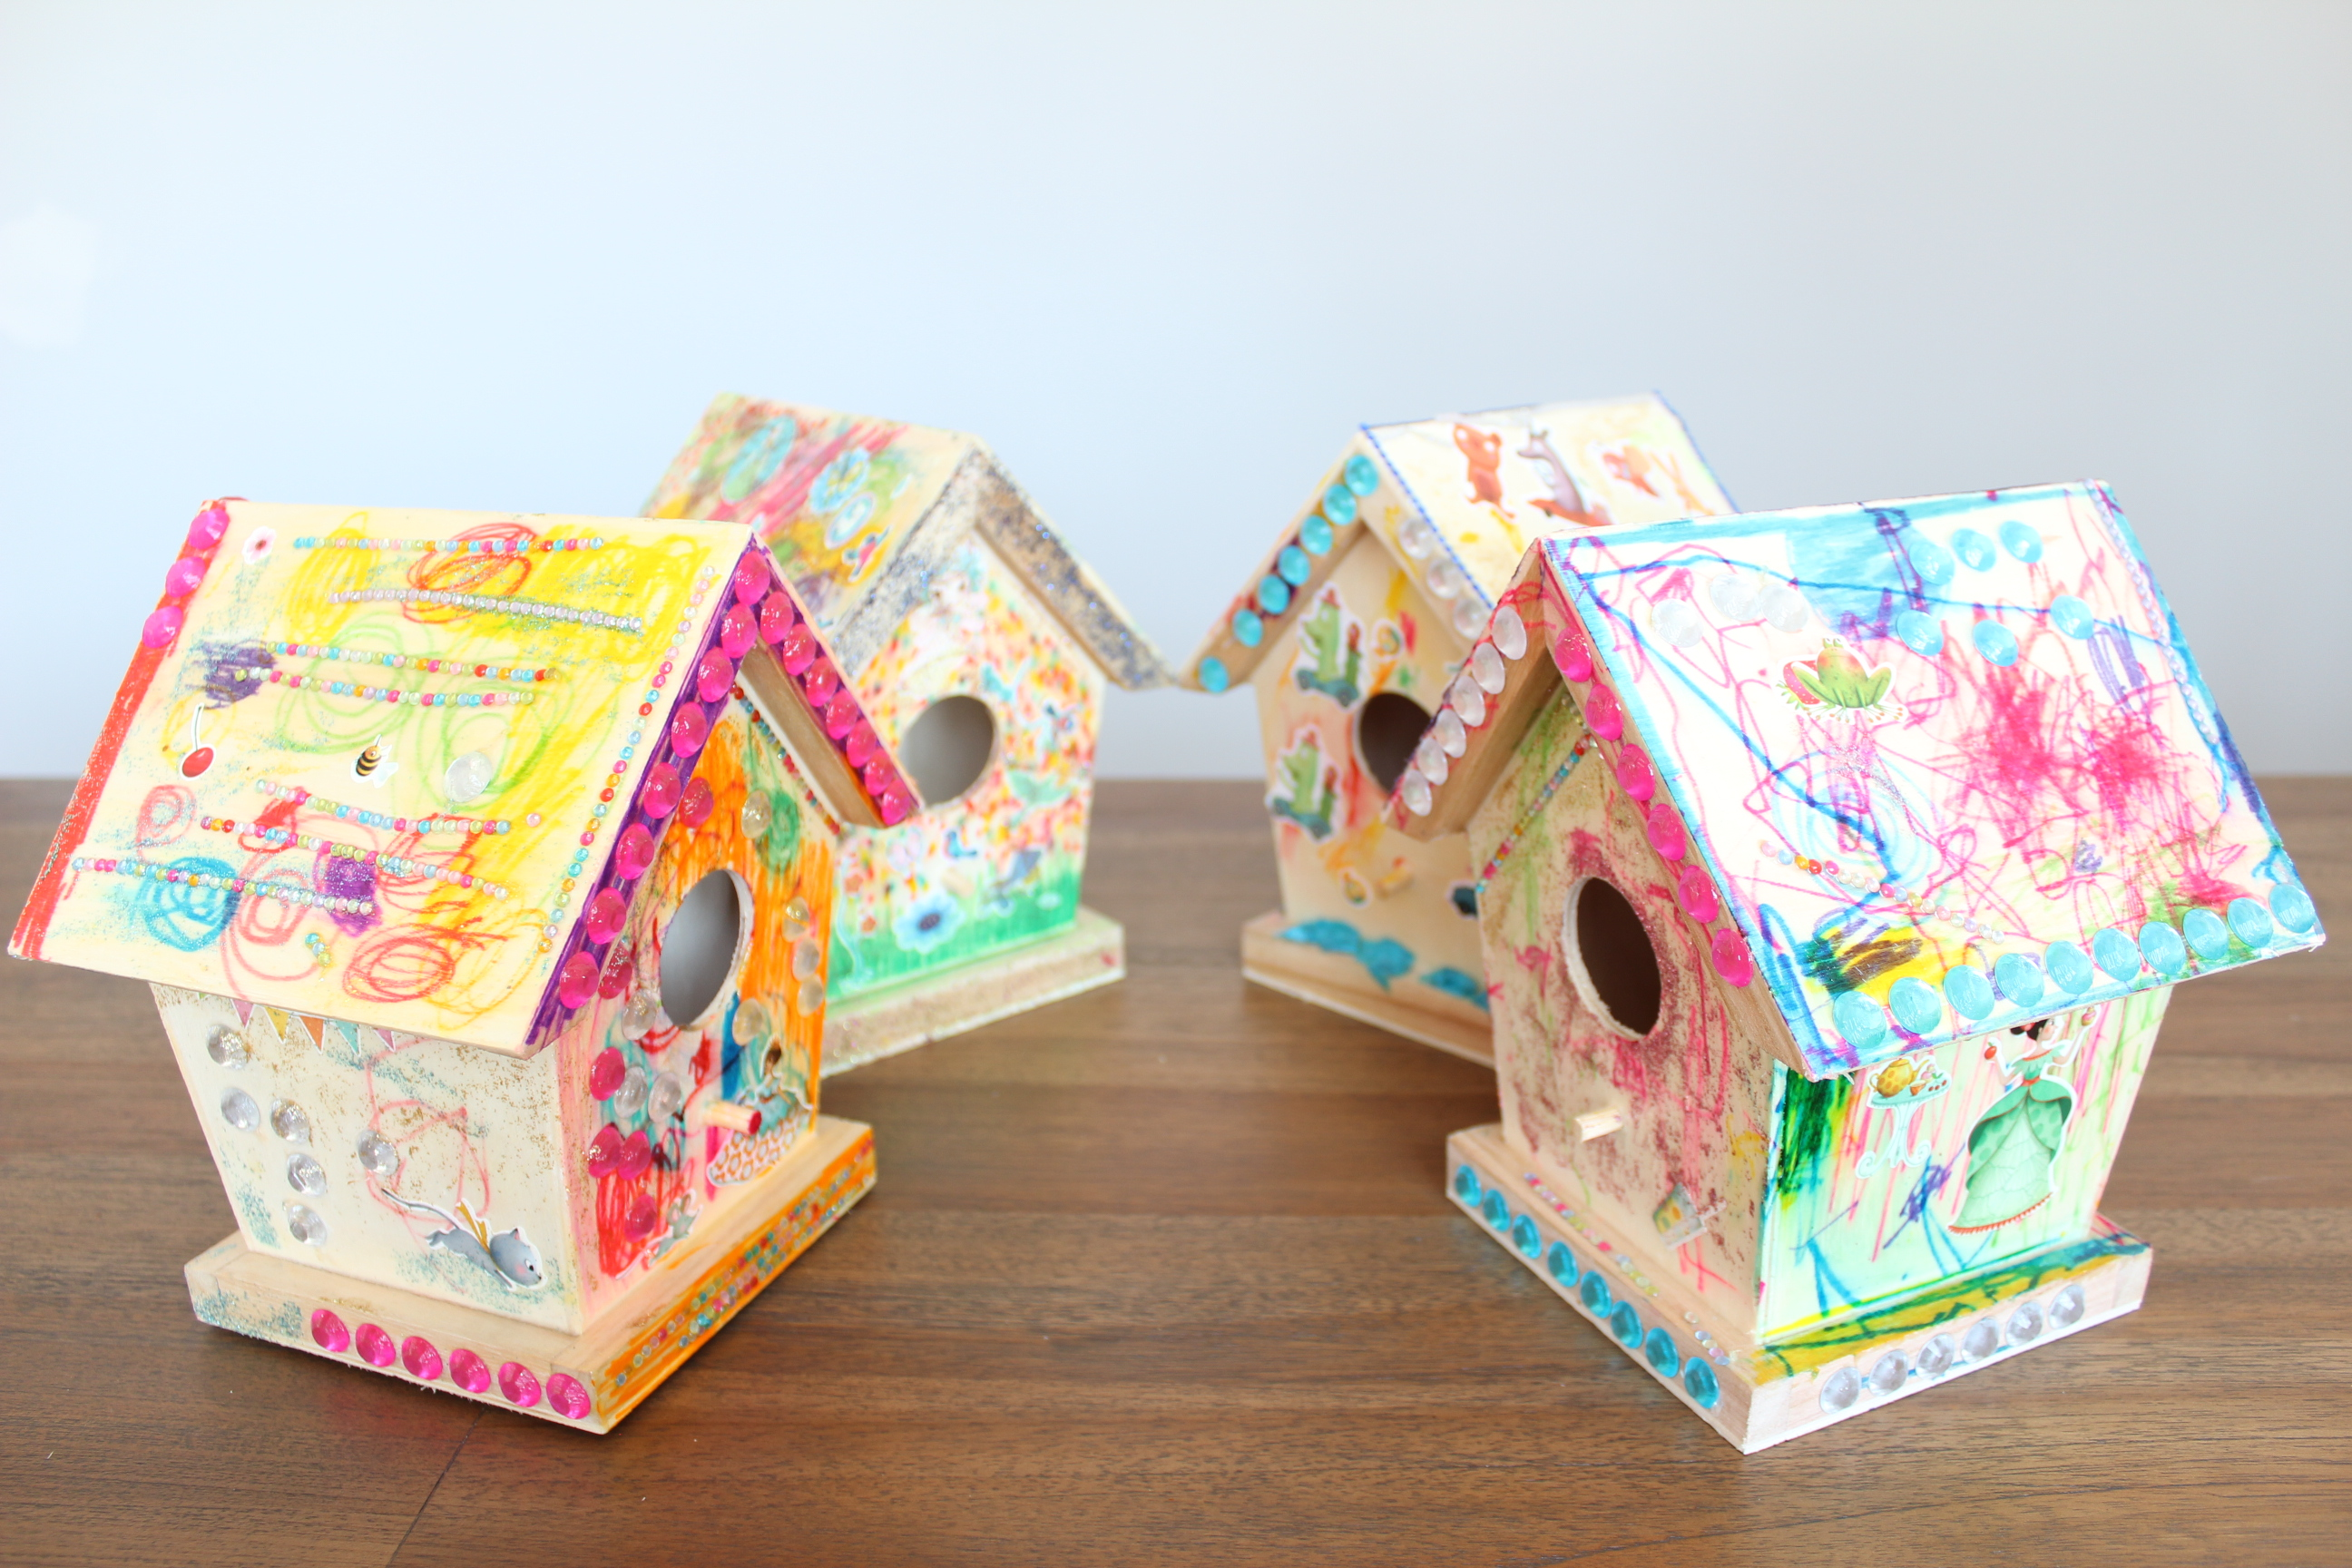 Birdhouses decorated by pre-schoolers - Birthday party activity